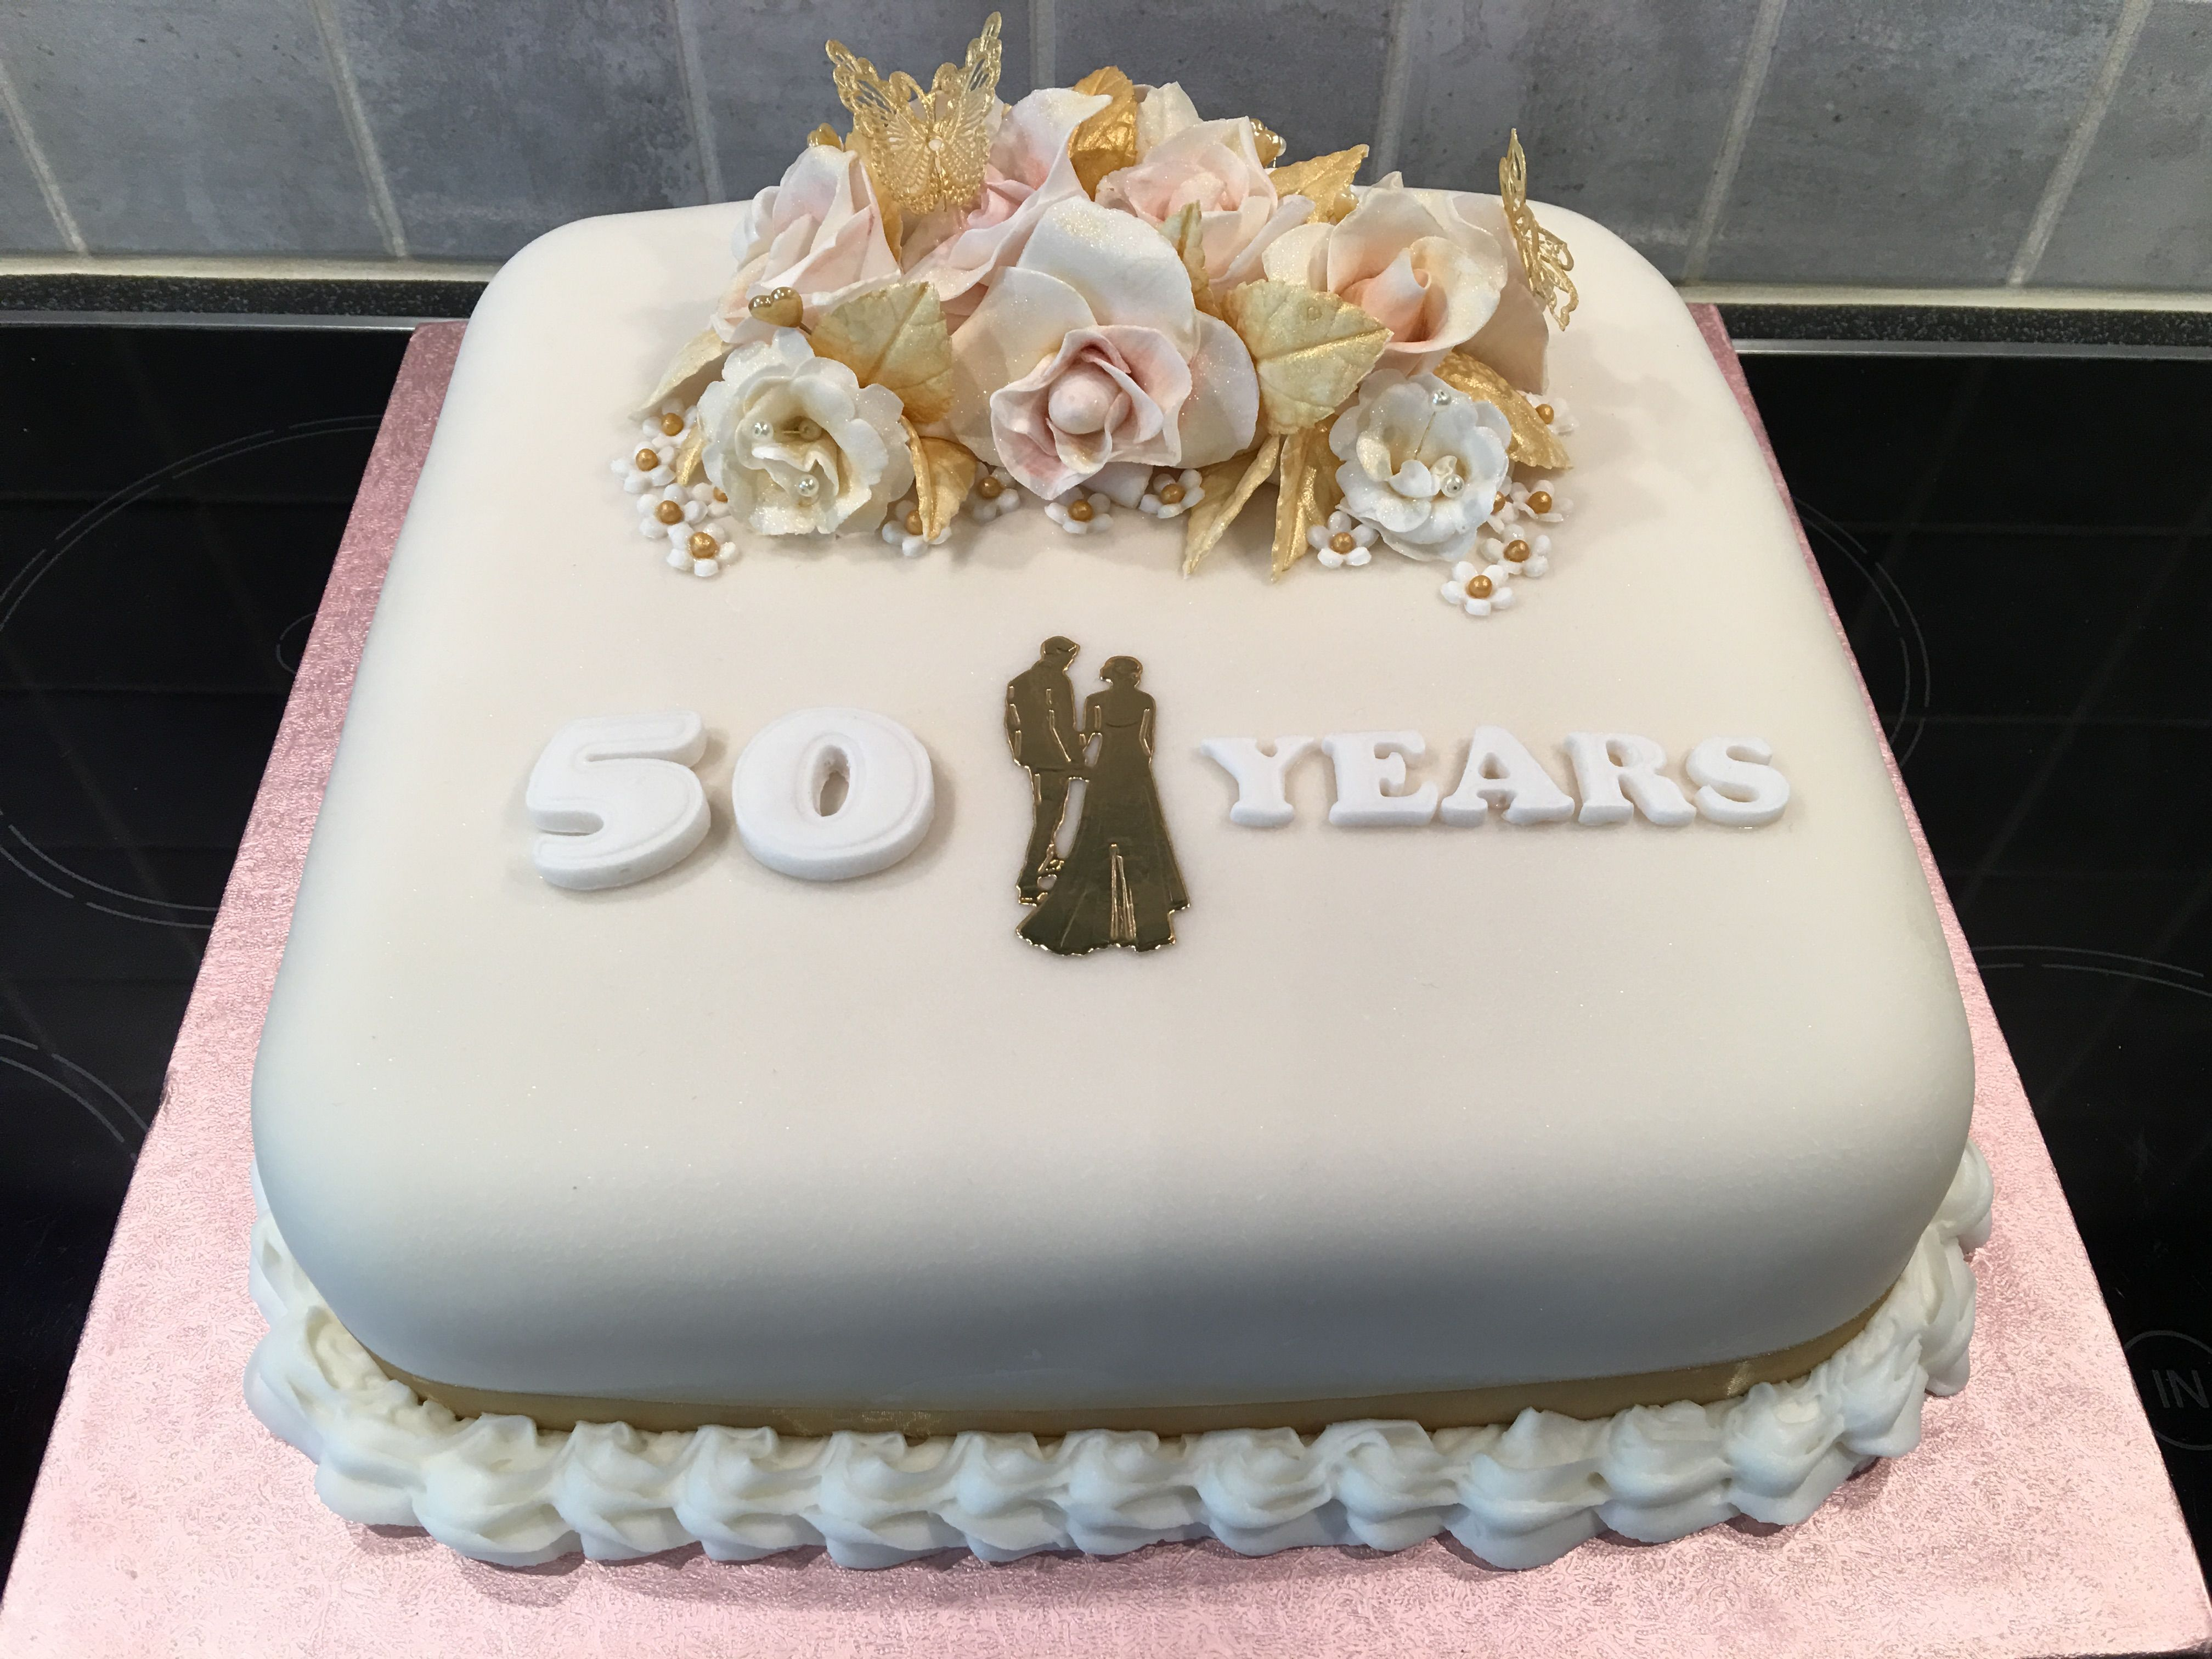 Th wedding anniversary cake sugar paste roses dusted with gold